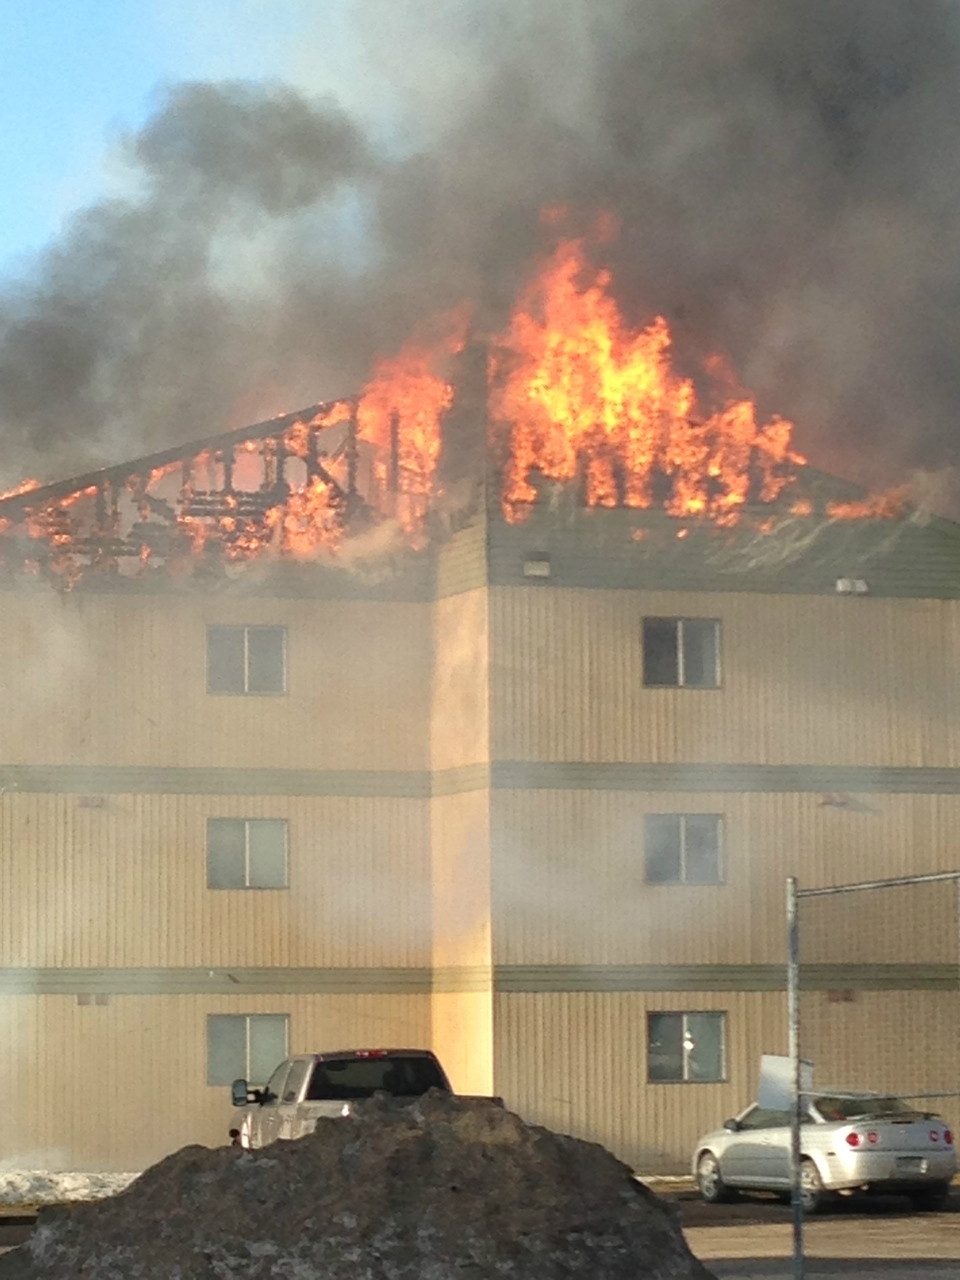 Firefighters responded at about 7 a.m. Thursday to a fire at an apartment building near Eighth Street and McKercher Drive.